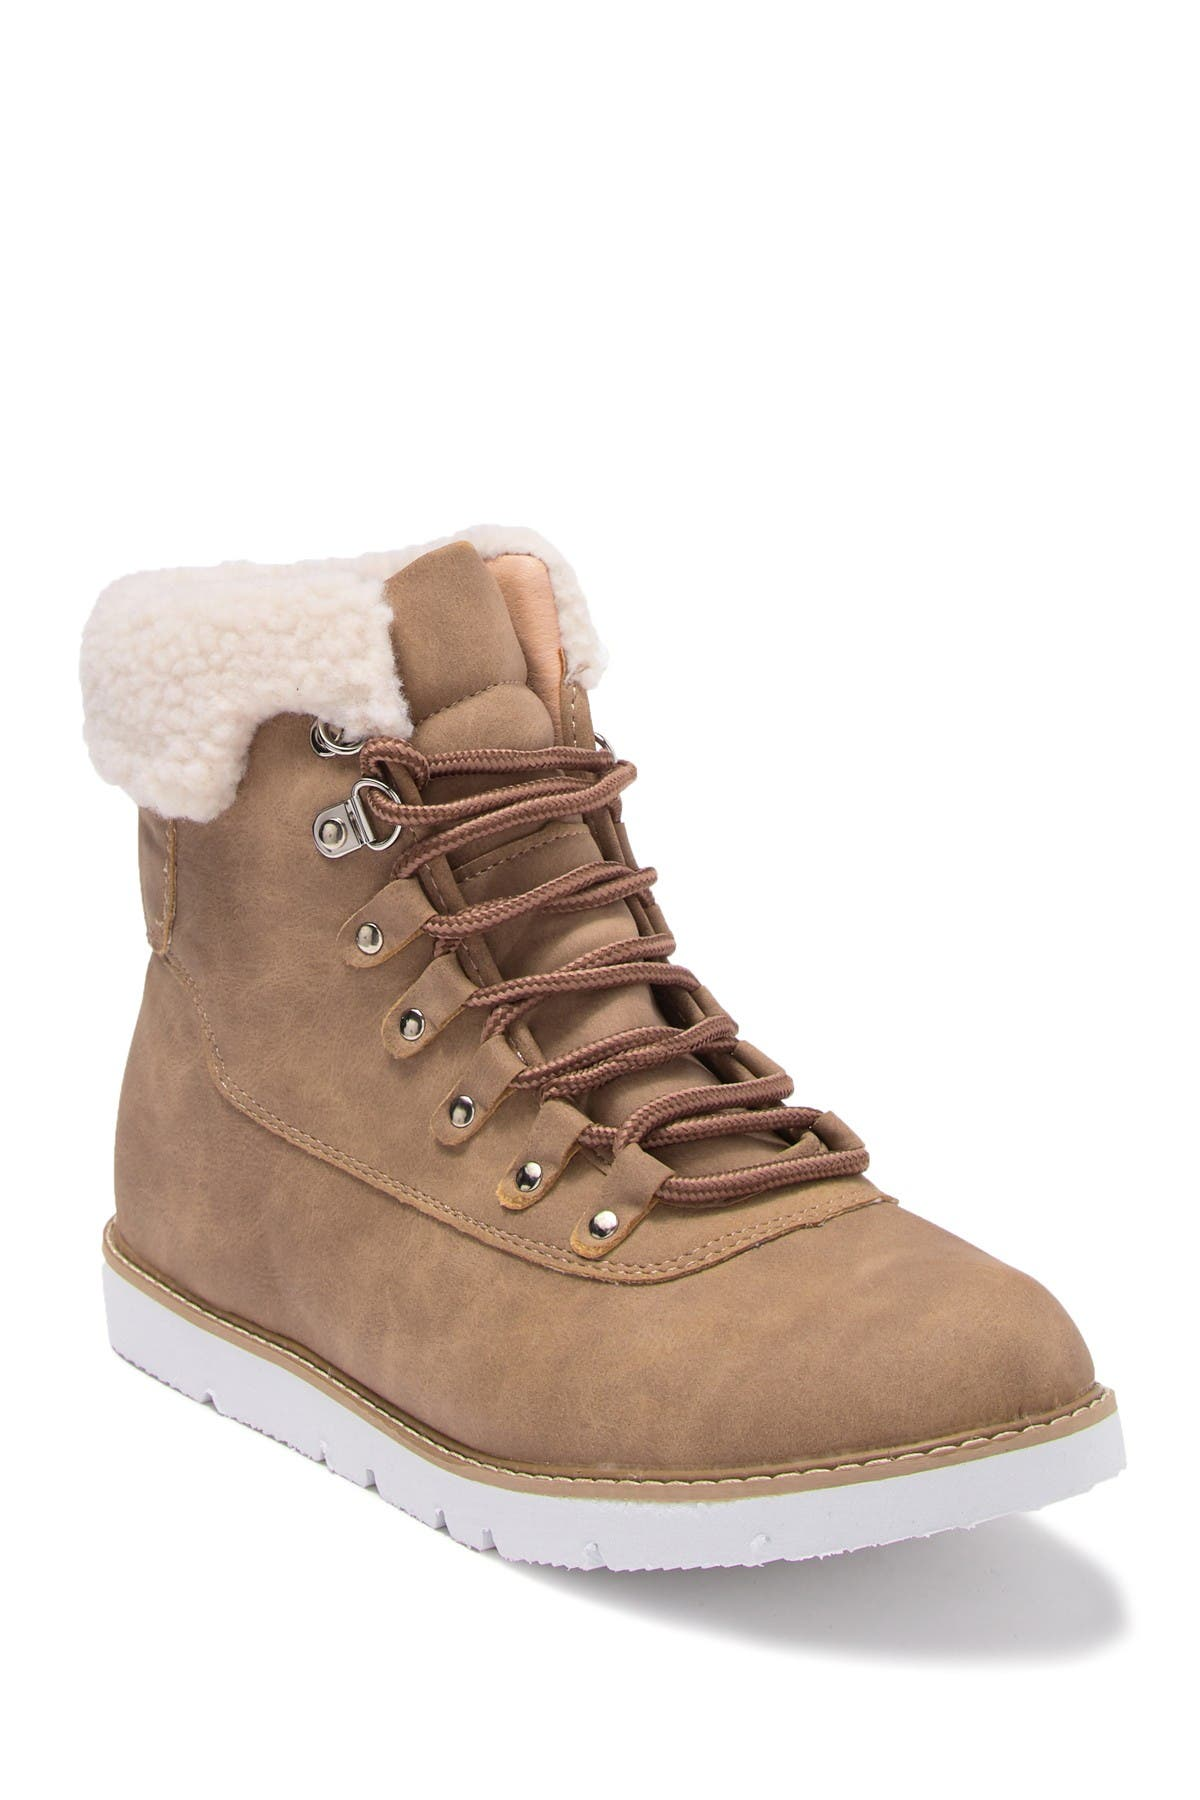 Image of Chase & Chloe Zenia aux Shearling Trimmed Combat Bootie